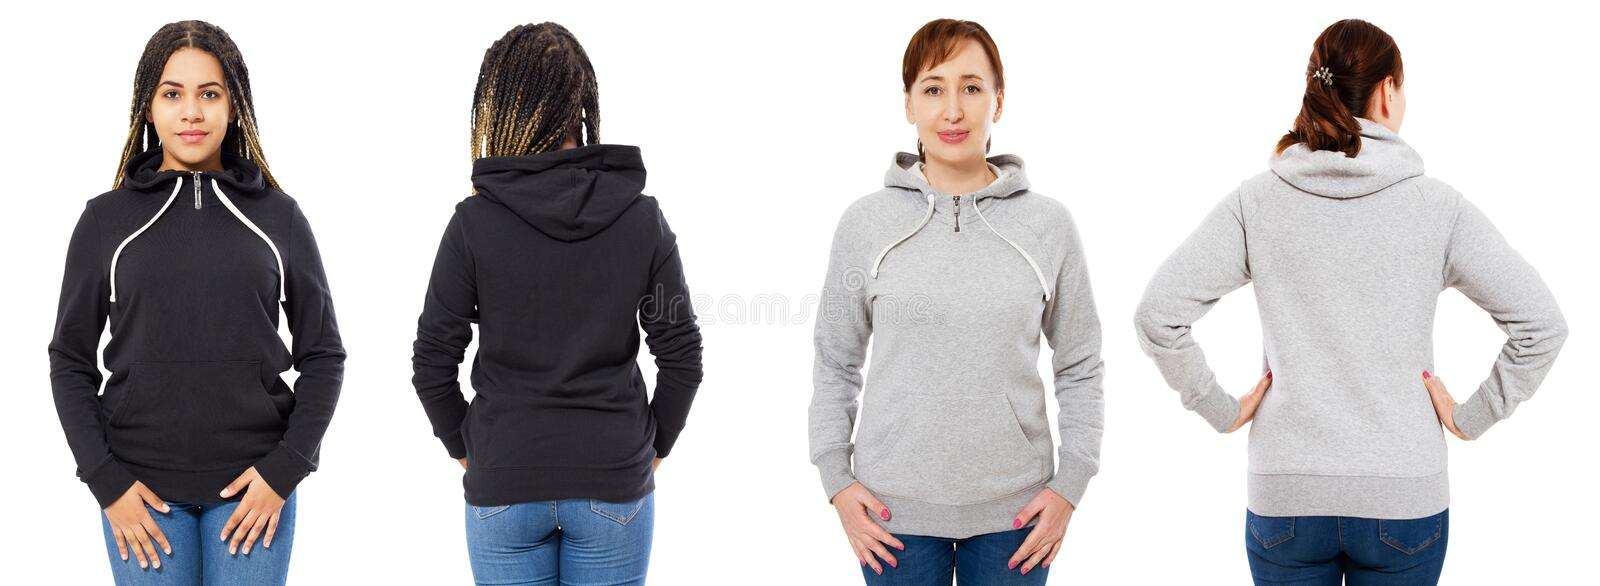 Girl in stylish black hoodie isolated on white background : girl in grey hood front and back view isolated stock images